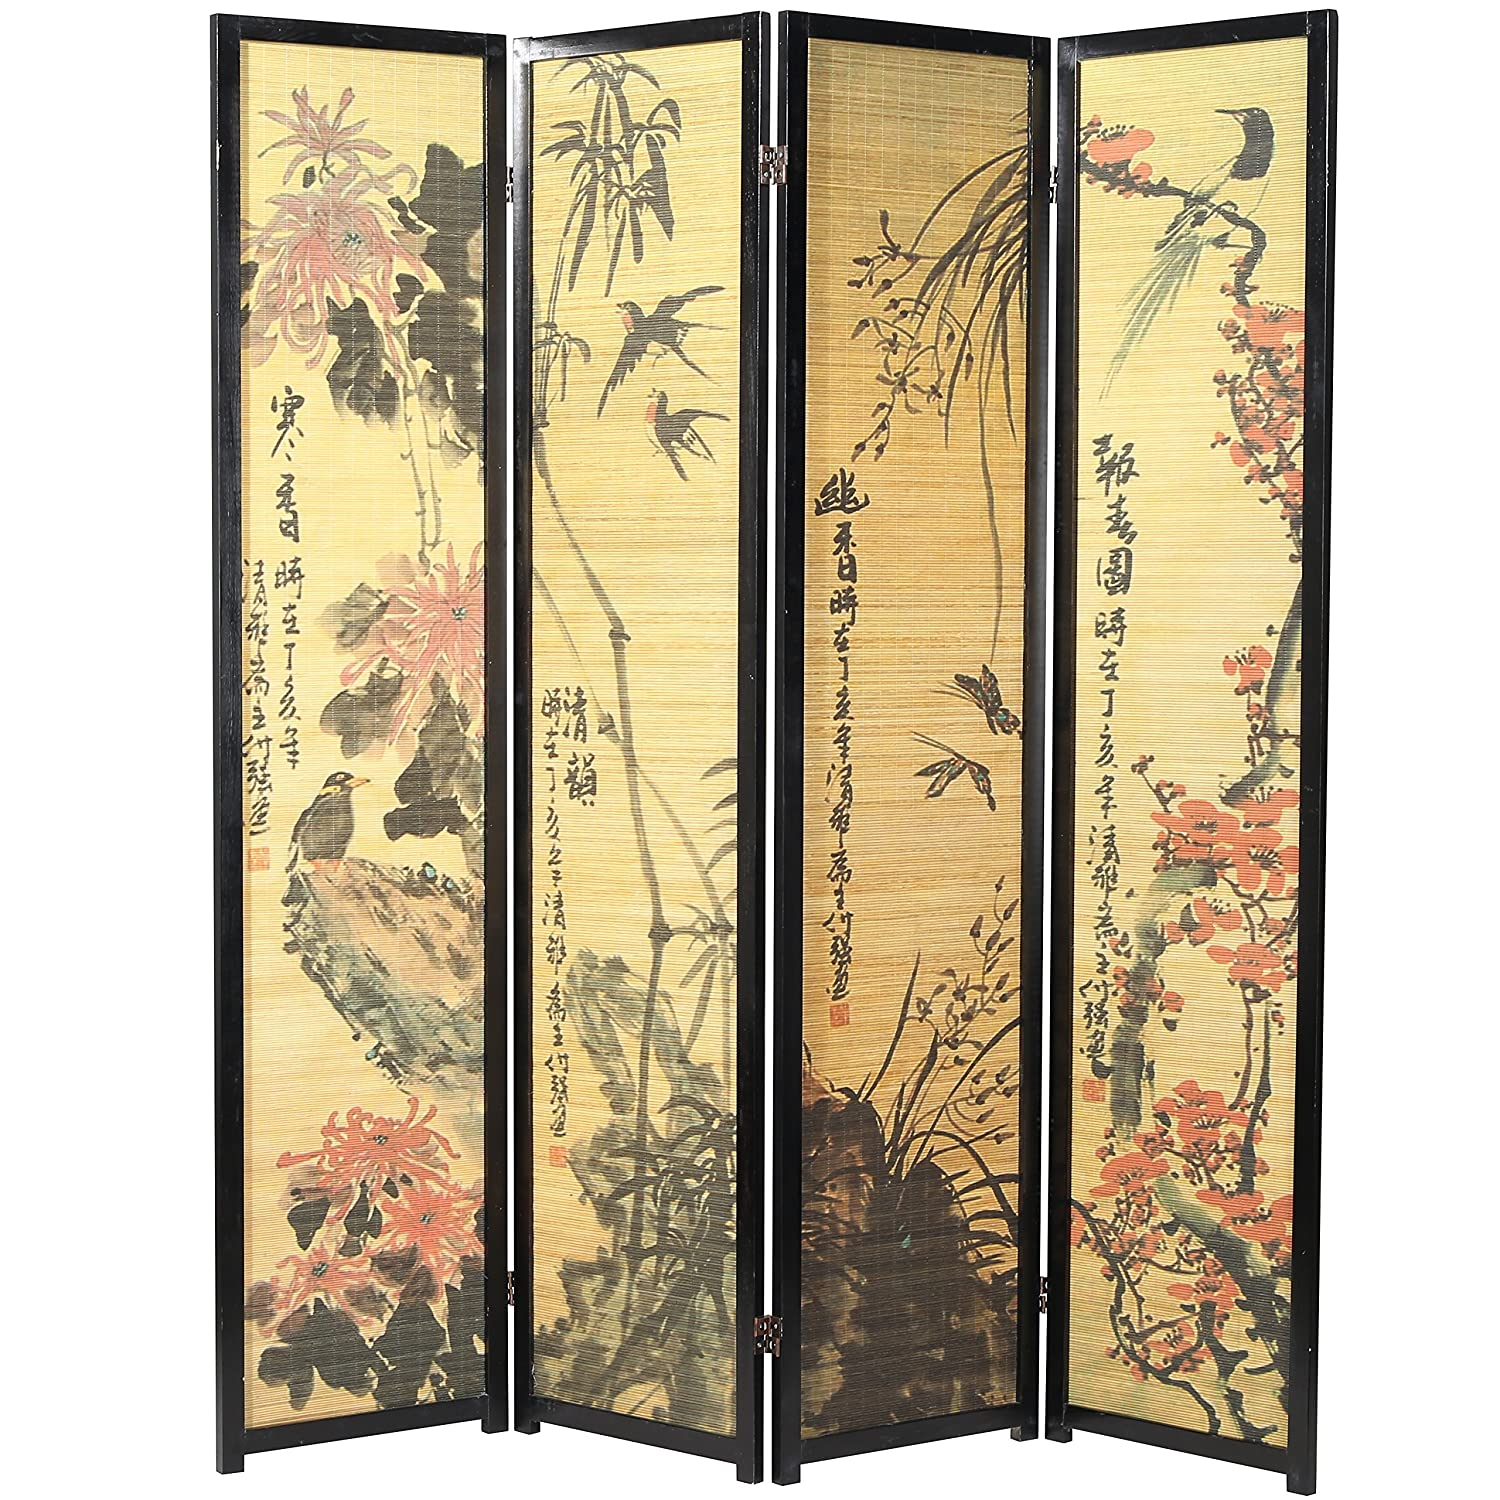 Amazon.com: Decorative Chinese Calligraphy Design Wood & Bamboo ...